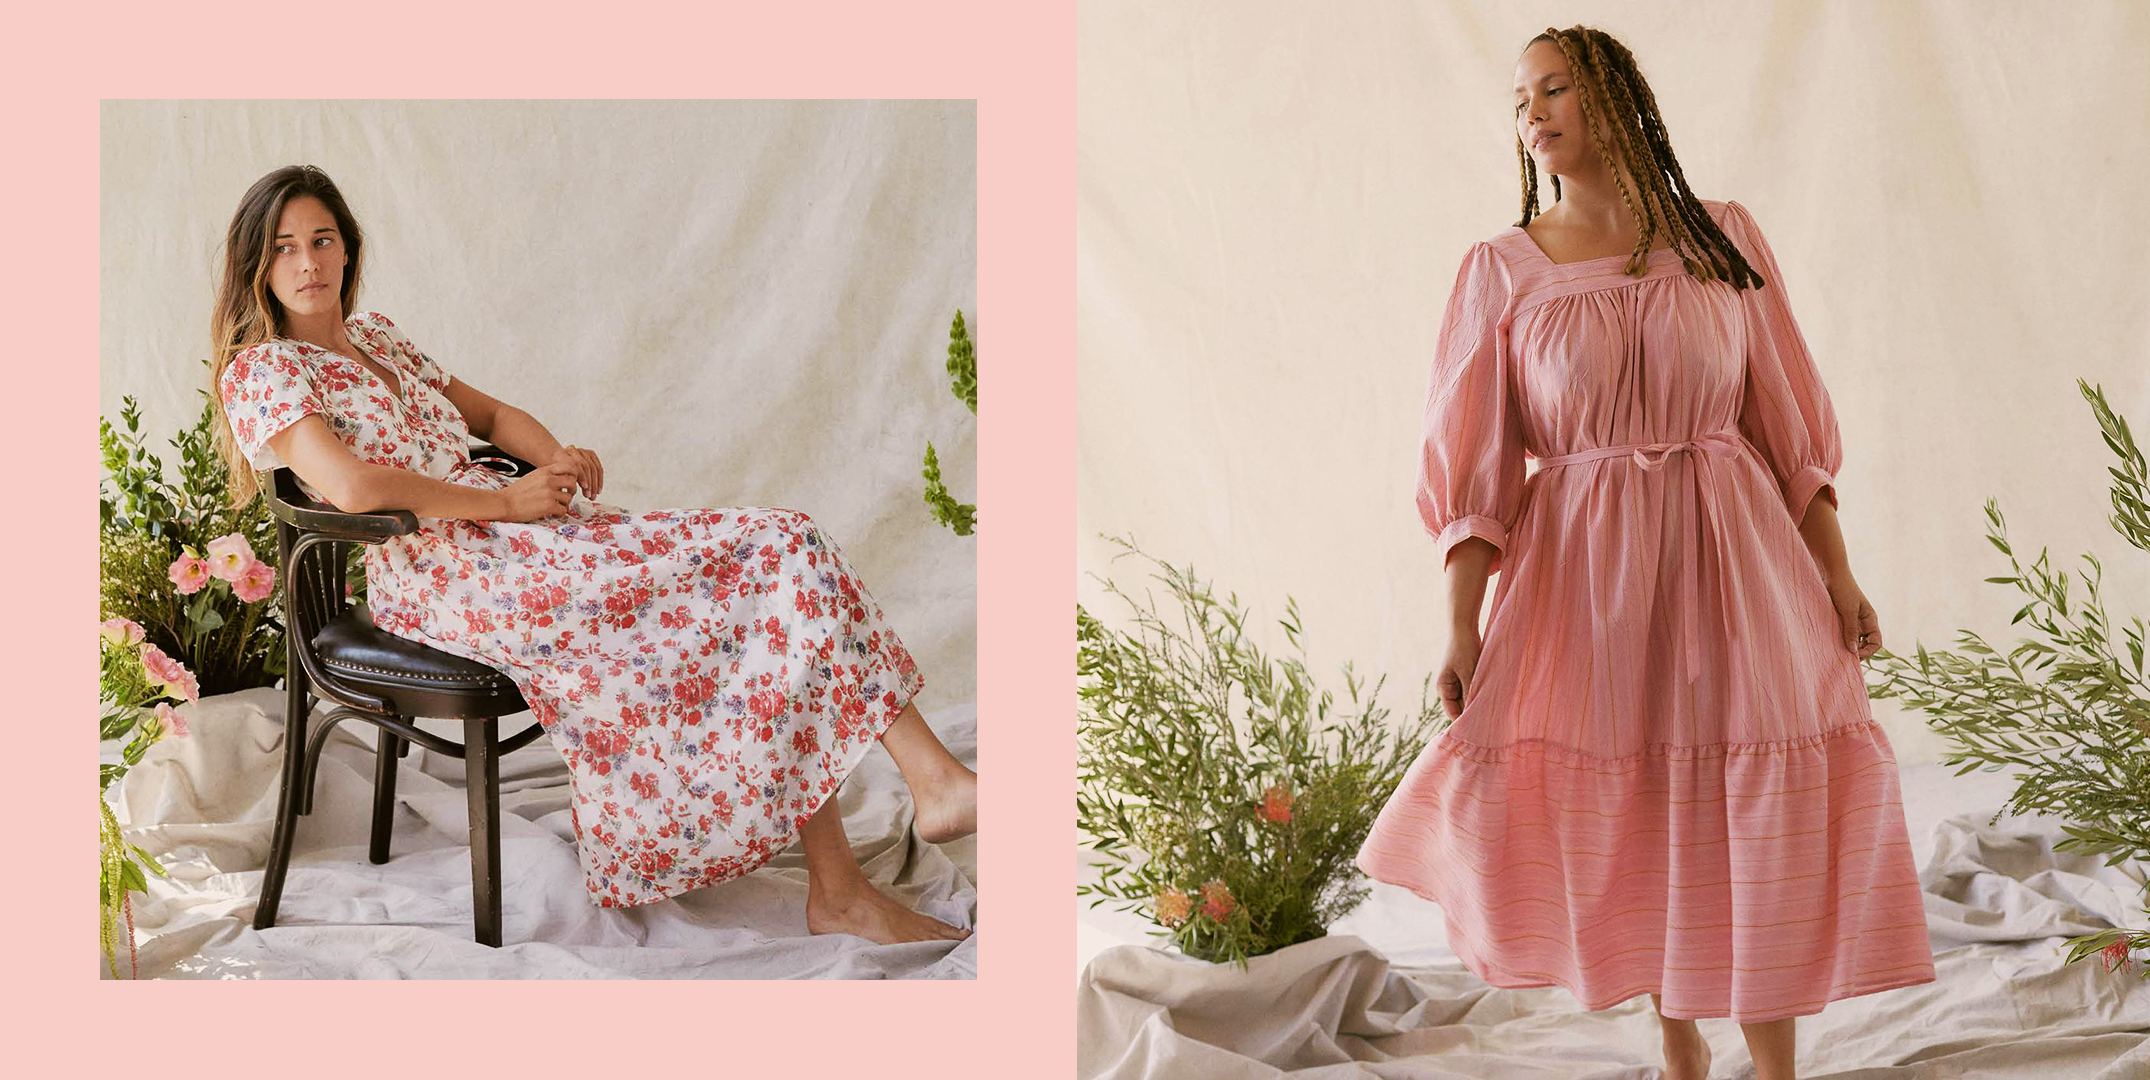 """<p>Towards the beginning of quarantine, you might have heard about the """"house dress"""" trend, and if you need a lil refresher, it's literally a dress you can wear around the house as, like, elevated <a href=""""https://www.cosmopolitan.com/style-beauty/fashion/g31817208/best-loungewear-brands/"""" rel=""""nofollow noopener"""" target=""""_blank"""" data-ylk=""""slk:loungewear"""" class=""""link rapid-noclick-resp"""">loungewear</a>. But the dress style is more specific. Usually, they're midi or maxi length, they don't have constricting waistlines, and they're just all-around pretty breezy and comfortable. (Think voluminous skirts, drop waists, smocking, wrap designs, linen and cotton fabric, etc.) </p><p>Basically, if you're sick of all your <a href=""""https://www.cosmopolitan.com/style-beauty/fashion/g31814564/best-sweatpants-for-women/"""" rel=""""nofollow noopener"""" target=""""_blank"""" data-ylk=""""slk:sweatpants"""" class=""""link rapid-noclick-resp"""">sweatpants</a> and <a href=""""https://www.cosmopolitan.com/style-beauty/fashion/g32365158/best-high-waisted-leggings-online/"""" rel=""""nofollow noopener"""" target=""""_blank"""" data-ylk=""""slk:leggings"""" class=""""link rapid-noclick-resp"""">leggings</a> and <a href=""""https://www.cosmopolitan.com/style-beauty/fashion/g32464462/best-adult-onesies-for-women/"""" rel=""""nofollow noopener"""" target=""""_blank"""" data-ylk=""""slk:pajamas"""" class=""""link rapid-noclick-resp"""">pajamas</a>, get yourself into a house dress and you'll be just as cozy because of the roomy shape, but you'll also look way fashionable on any video calls or for your party-of-one happy hour at home (no shame) while <a href=""""https://www.cosmopolitan.com/lifestyle/a31744921/social-distancing-activities/"""" rel=""""nofollow noopener"""" target=""""_blank"""" data-ylk=""""slk:social distancing"""" class=""""link rapid-noclick-resp"""">social distancing</a>. House dresses have been a major <a href=""""https://www.cosmopolitan.com/style-beauty/fashion/g32129000/summer-2020-fashion-trends/"""" rel=""""nofollow noopener"""" target=""""_blank"""" data-ylk=""""slk:summer trend"""" class=""""link rapid-noc"""